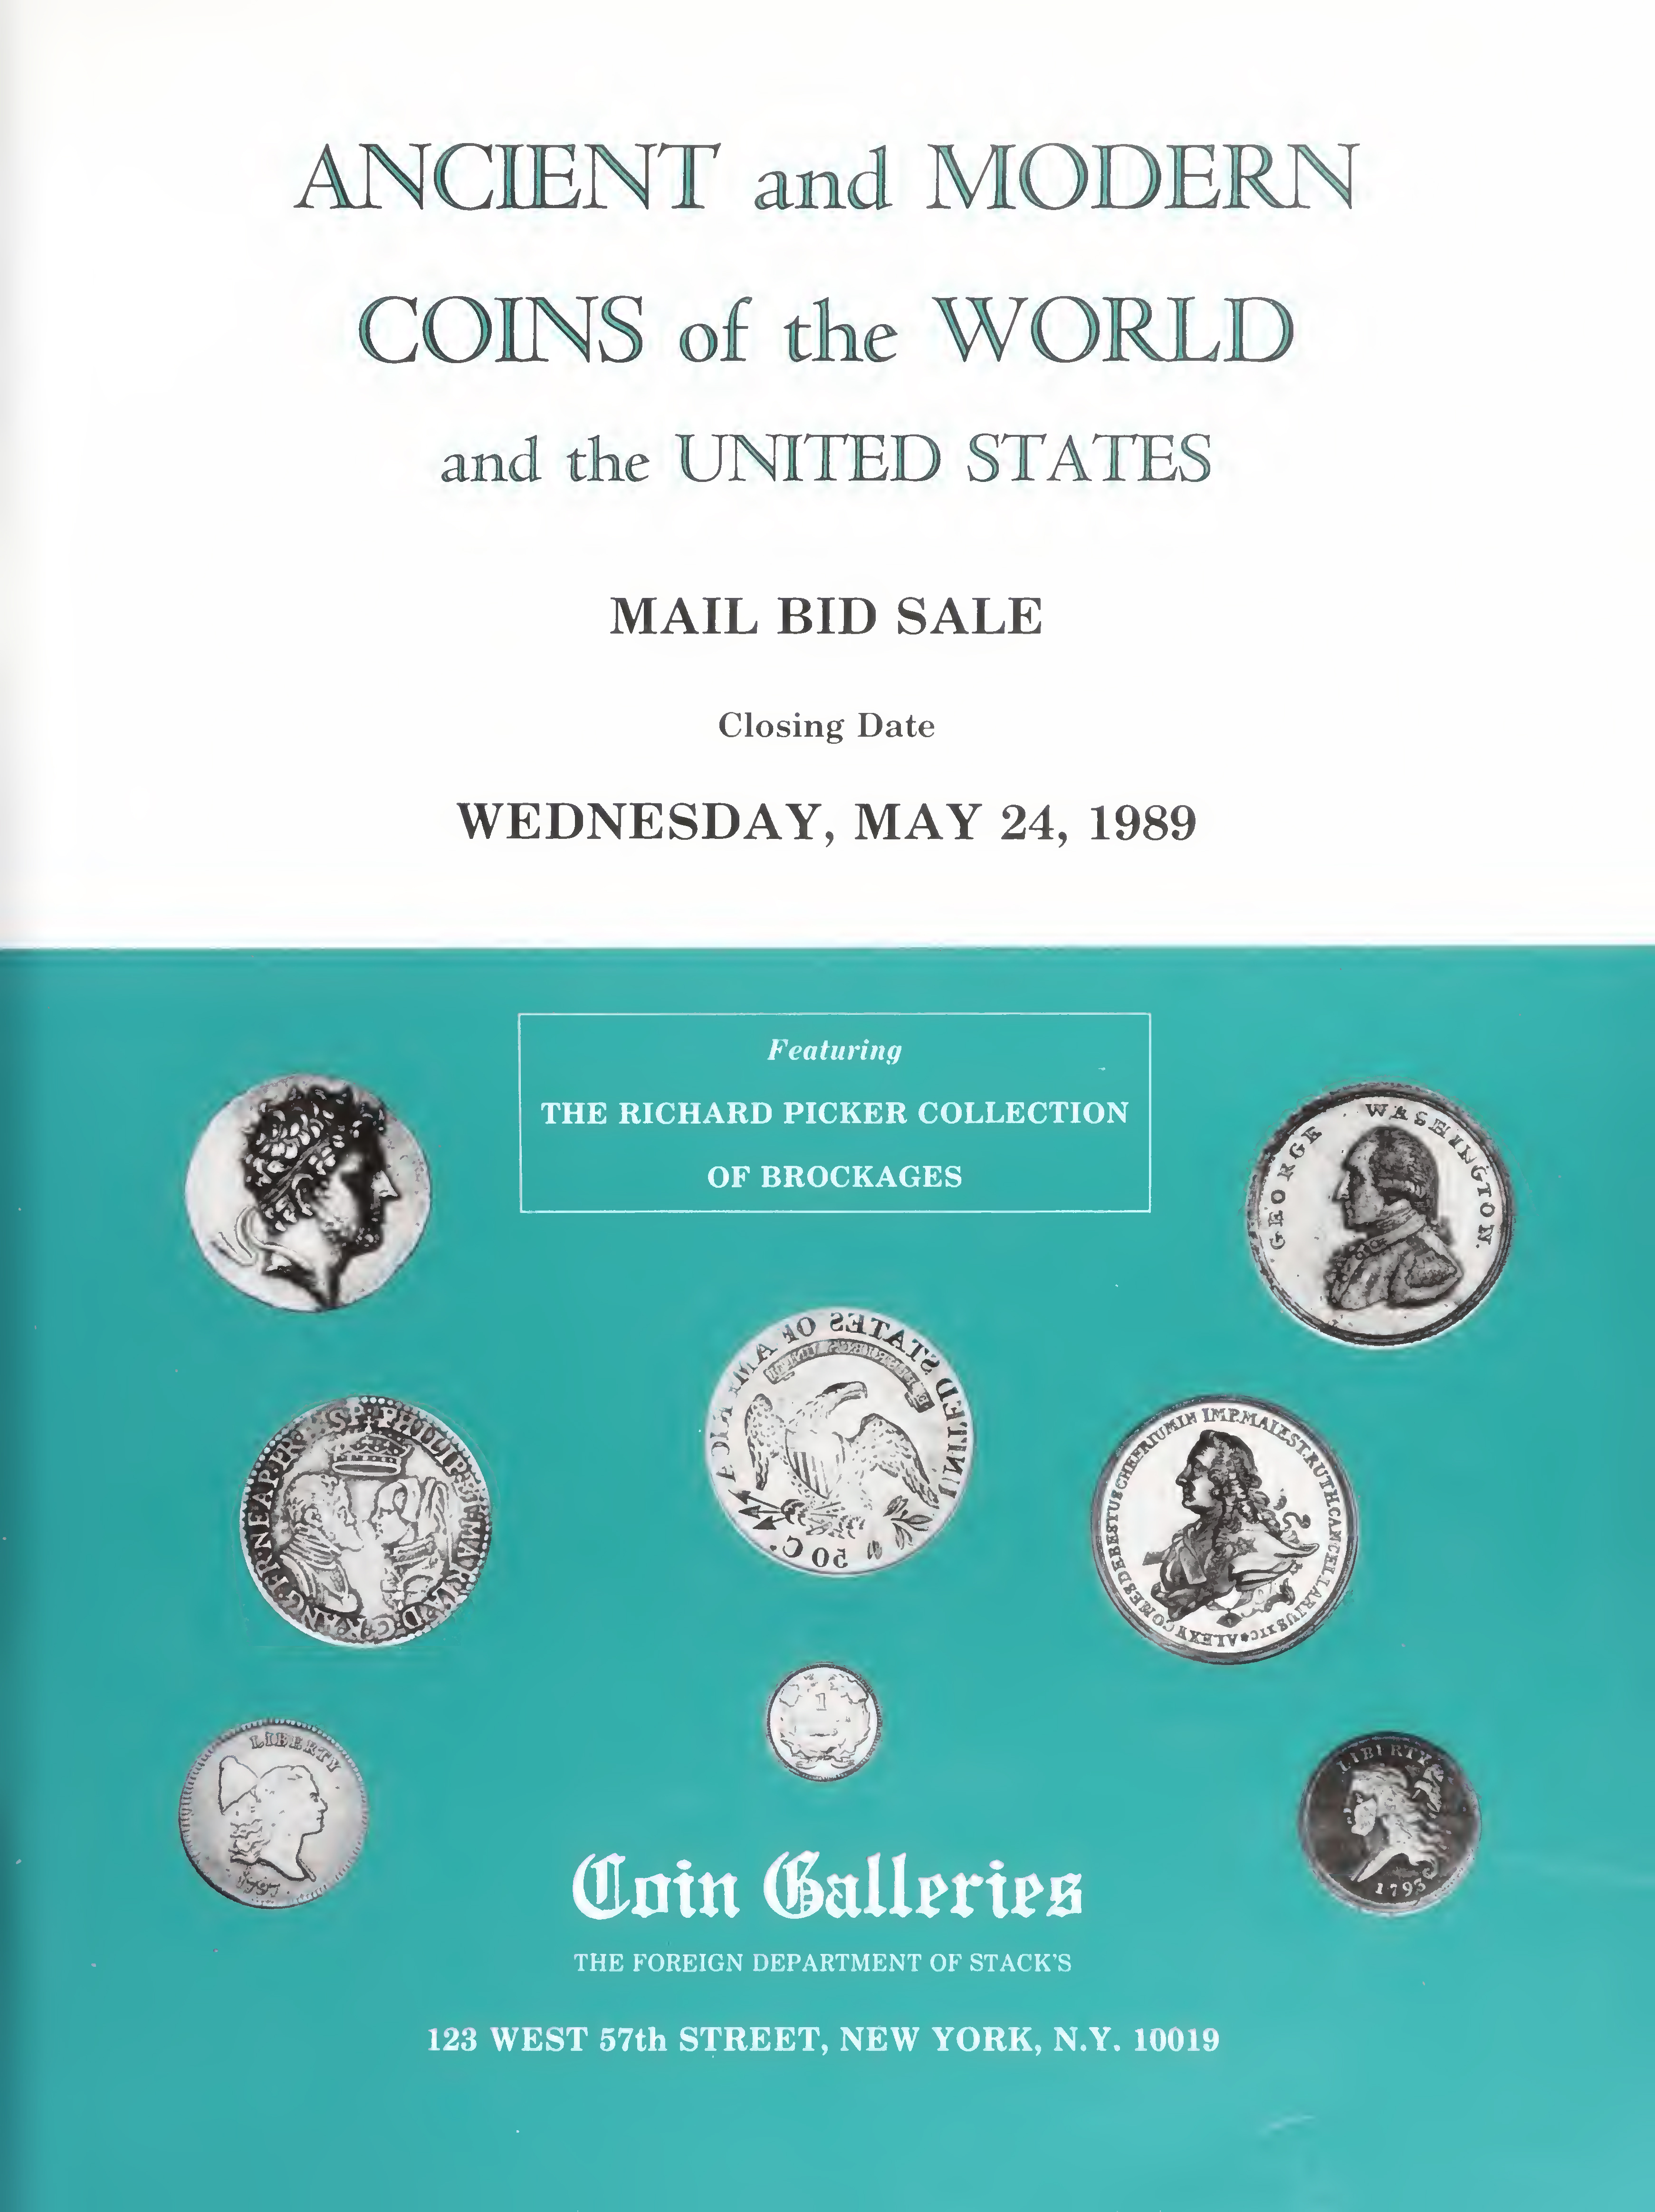 Ancient and Modern Coins of the World and the United States Featuring the Richard Picker Collection of Brockages Mail Bid Sale May 1989